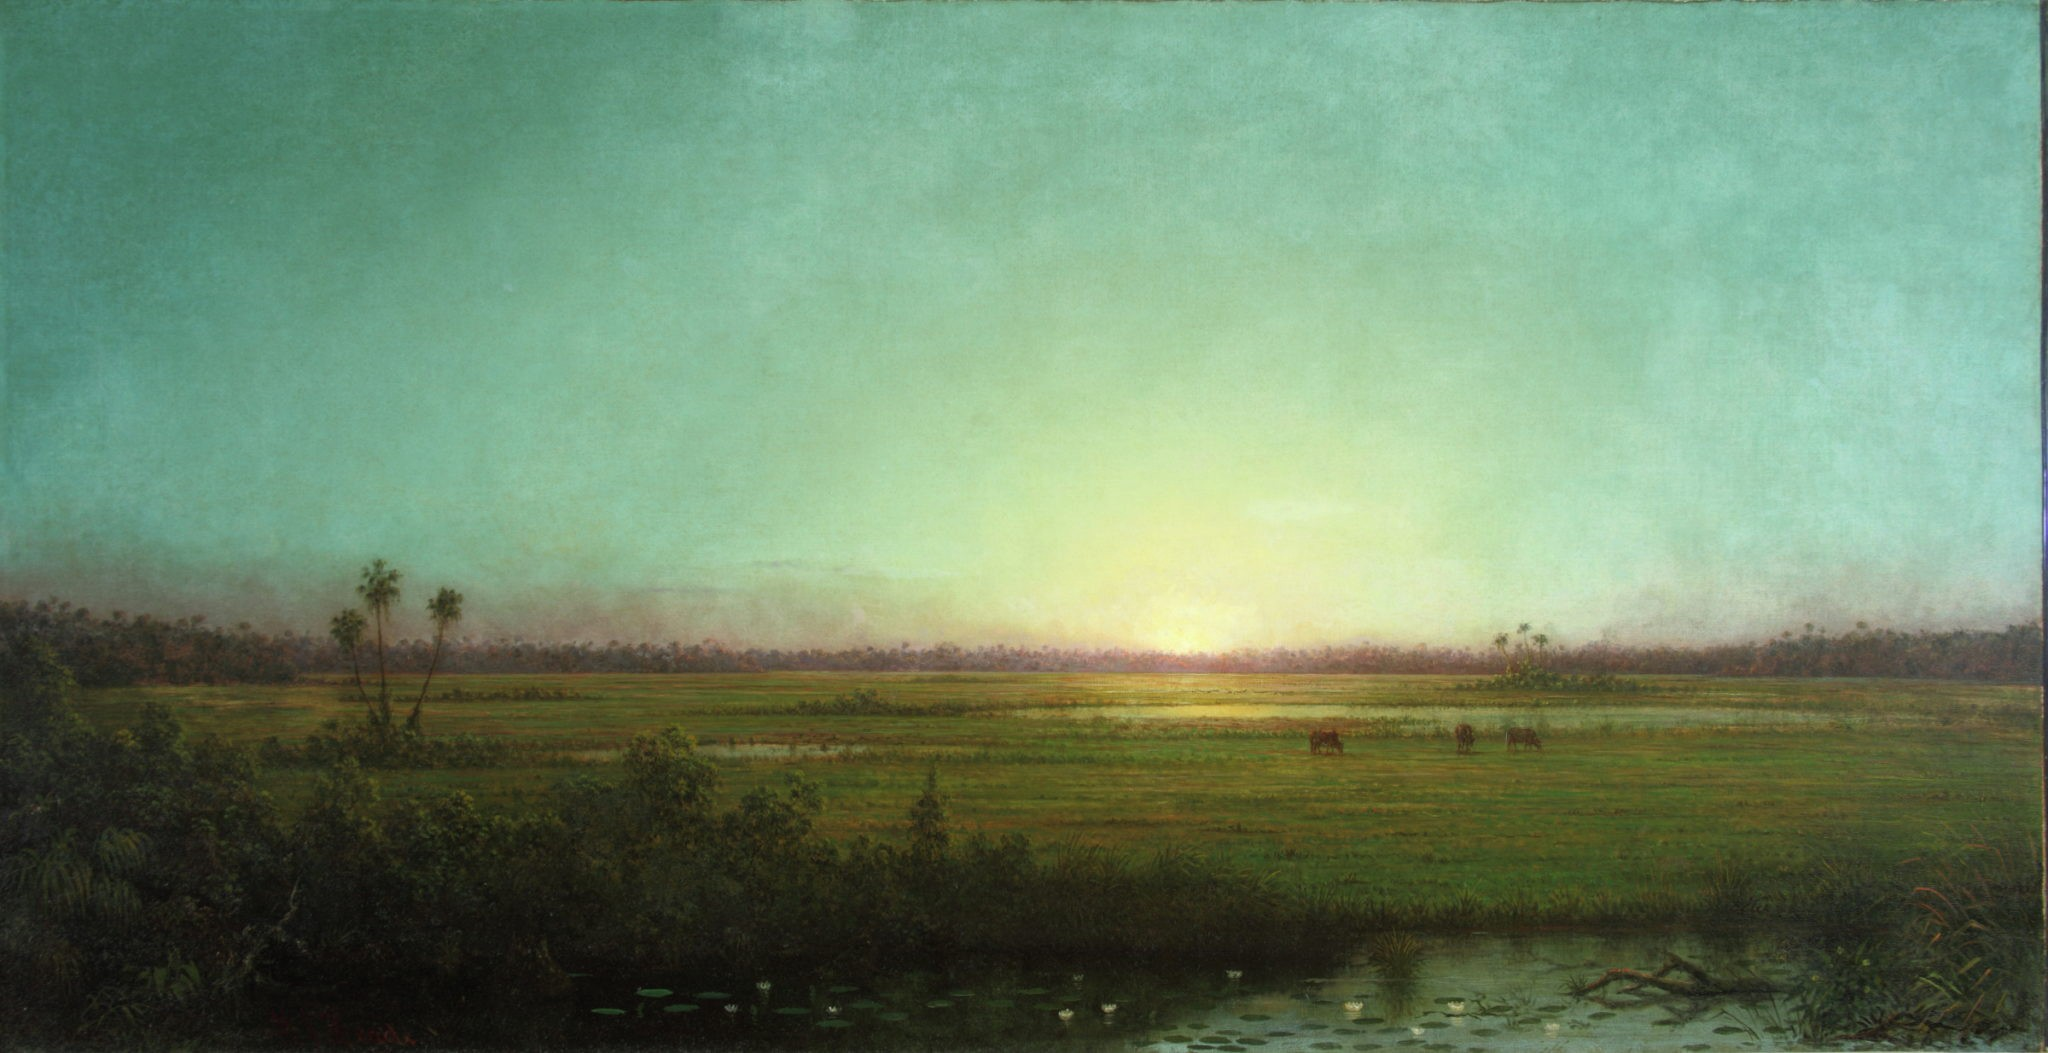 Painting of a flat landscape in blues and greens with a yellow sun at the horizon.